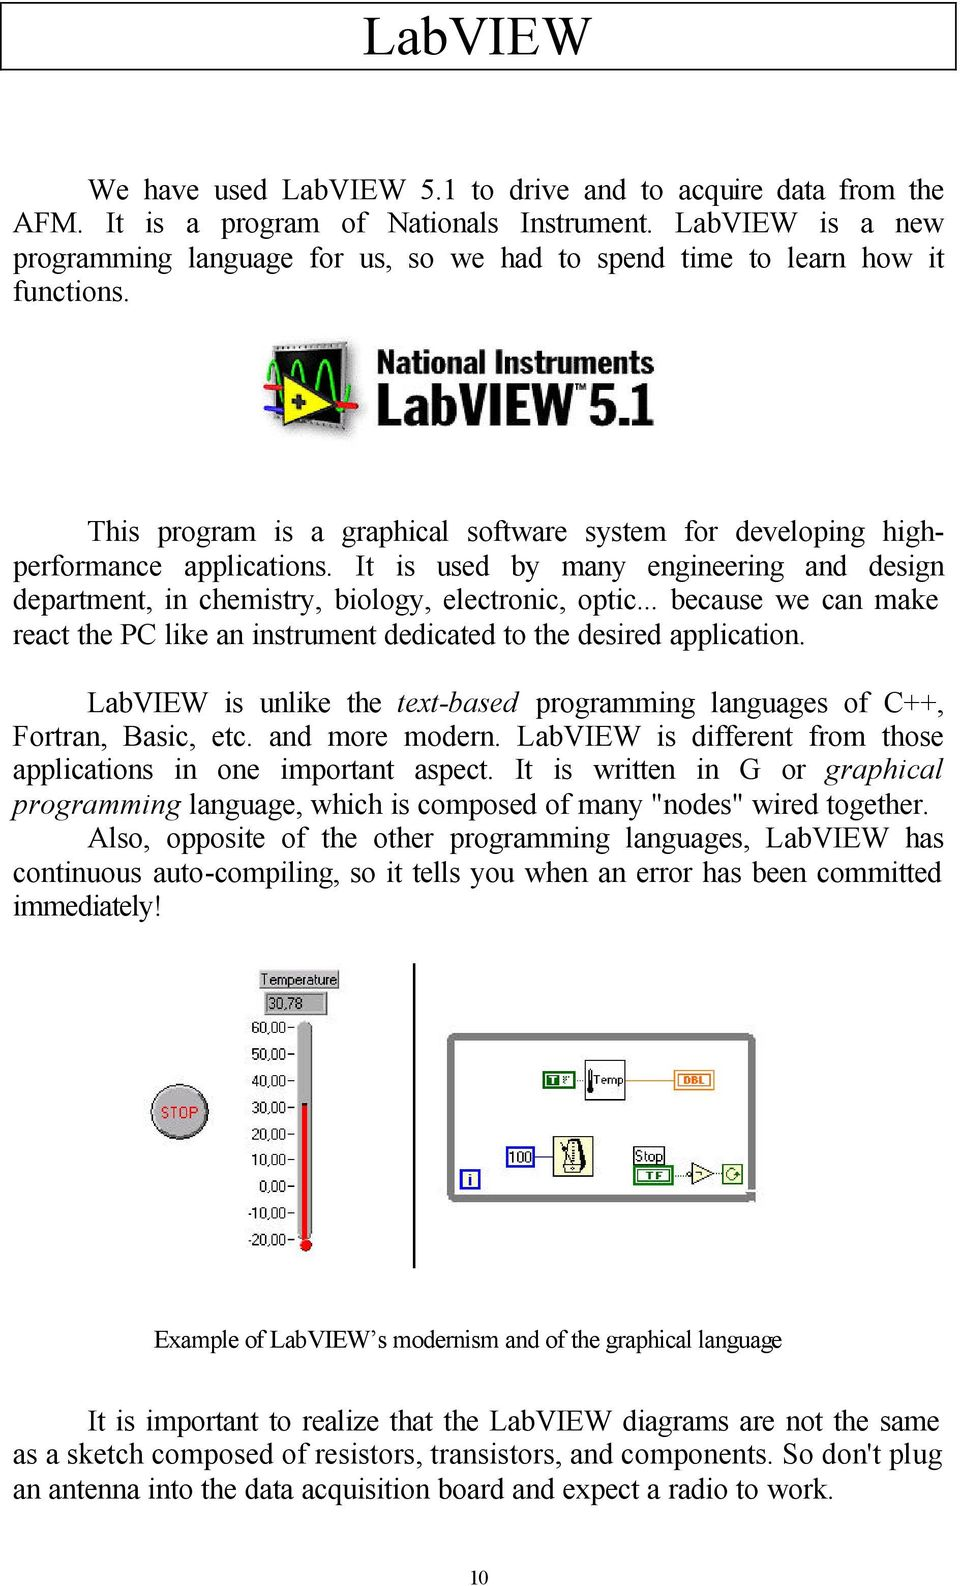 Drive an Atomic Force Microscope using LabVIEW software - PDF